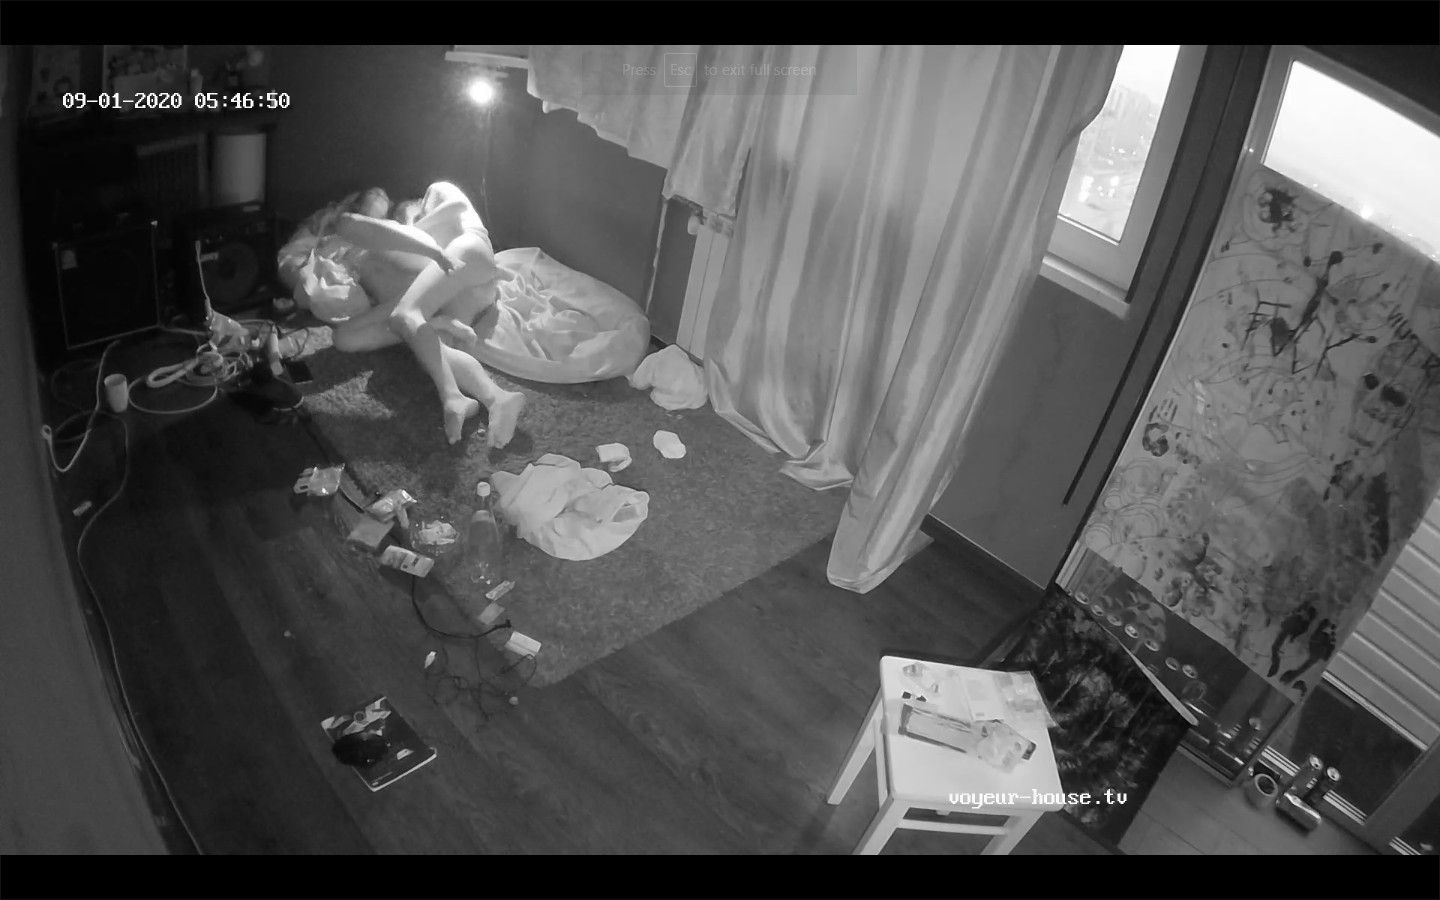 Guests morning sex,Sep 1